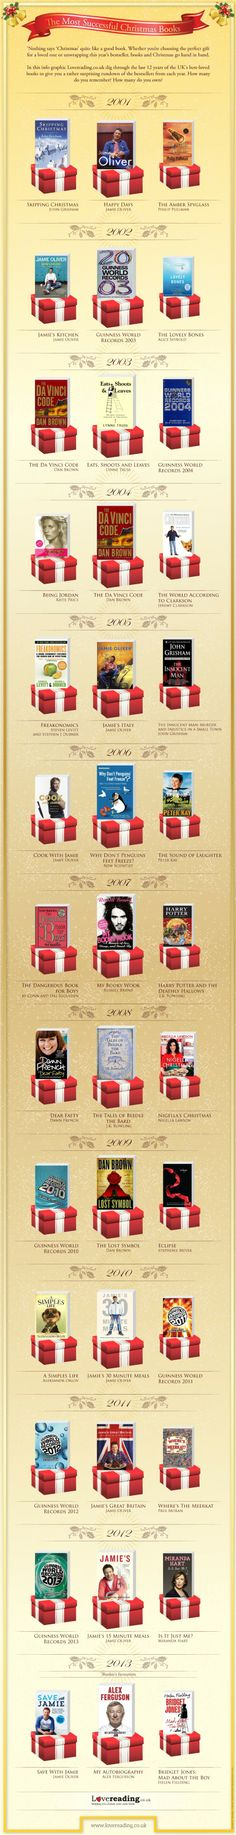 Homes Of Classic Literature #Infographic #Literature #Homes ...